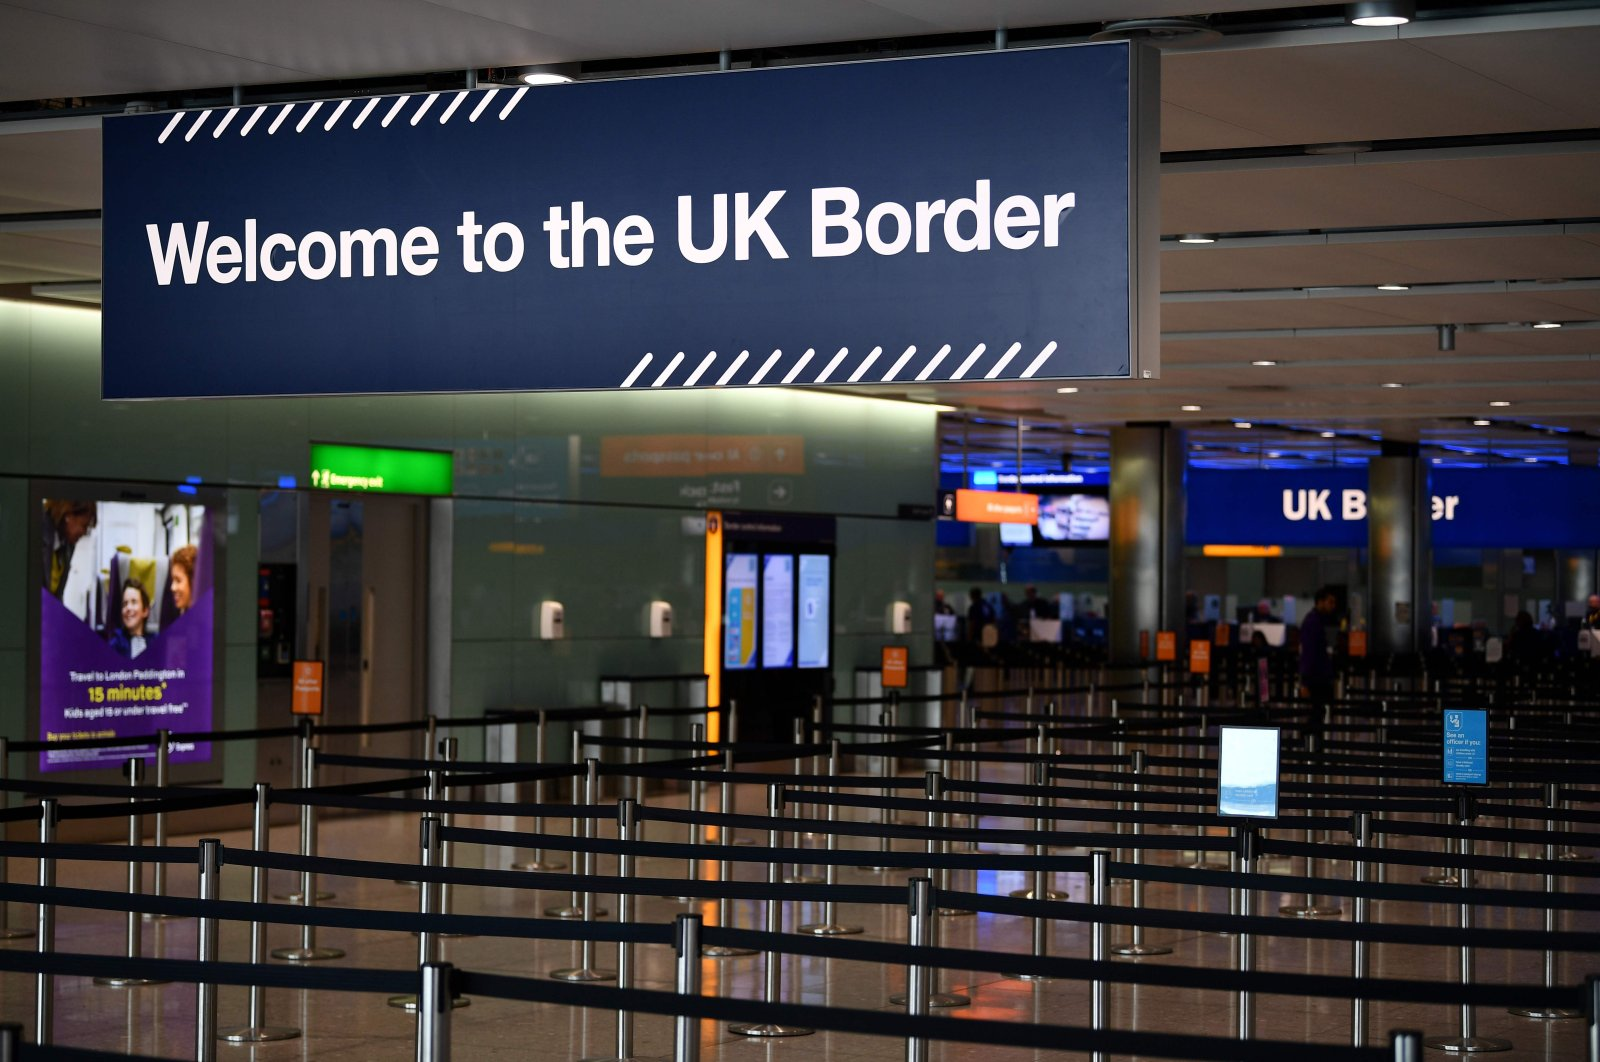 A UK border sign at the passport control in The Arrivals Hall of Terminal 2 at Heathrow Airport, west of London, July 16, 2019. (AFP Photo)